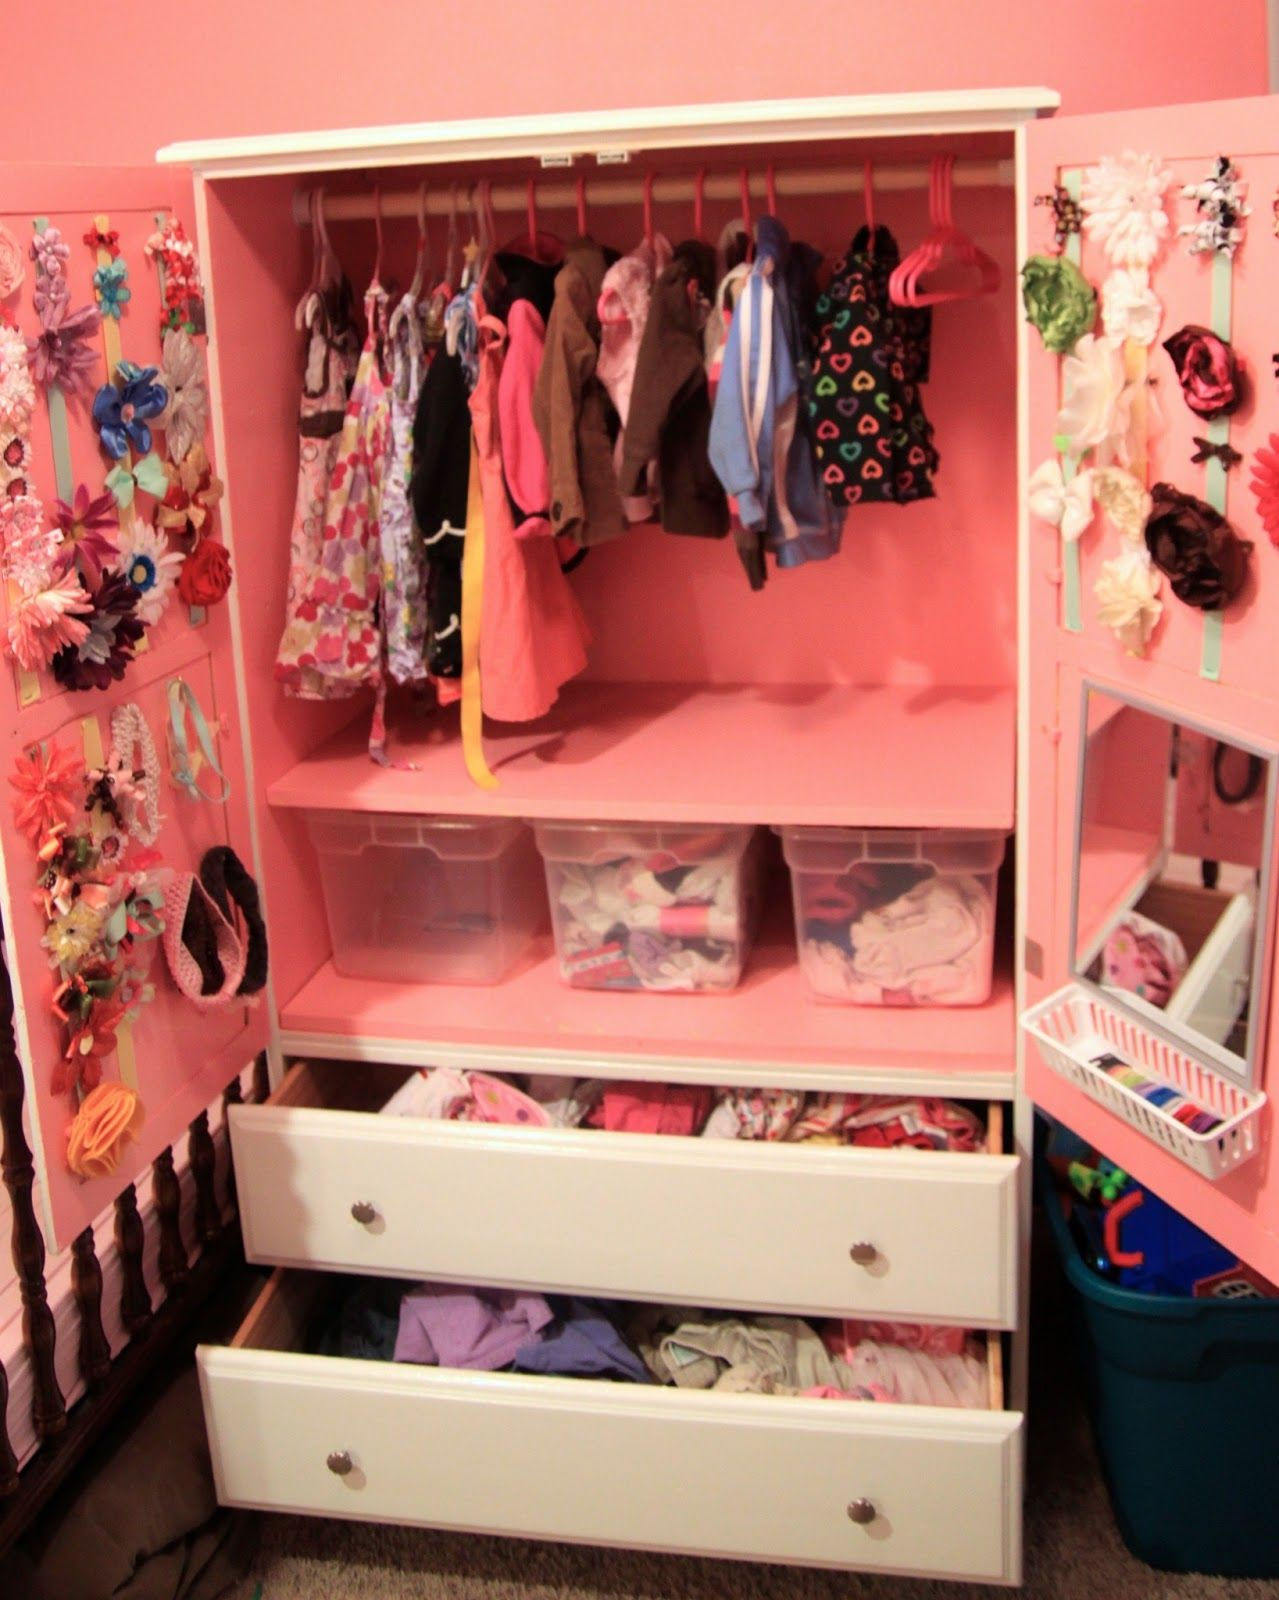 How To Organize A Small Closet With Lots Of Clothes Repurposed Tv Armoire To Kids Dresser Baby Girl